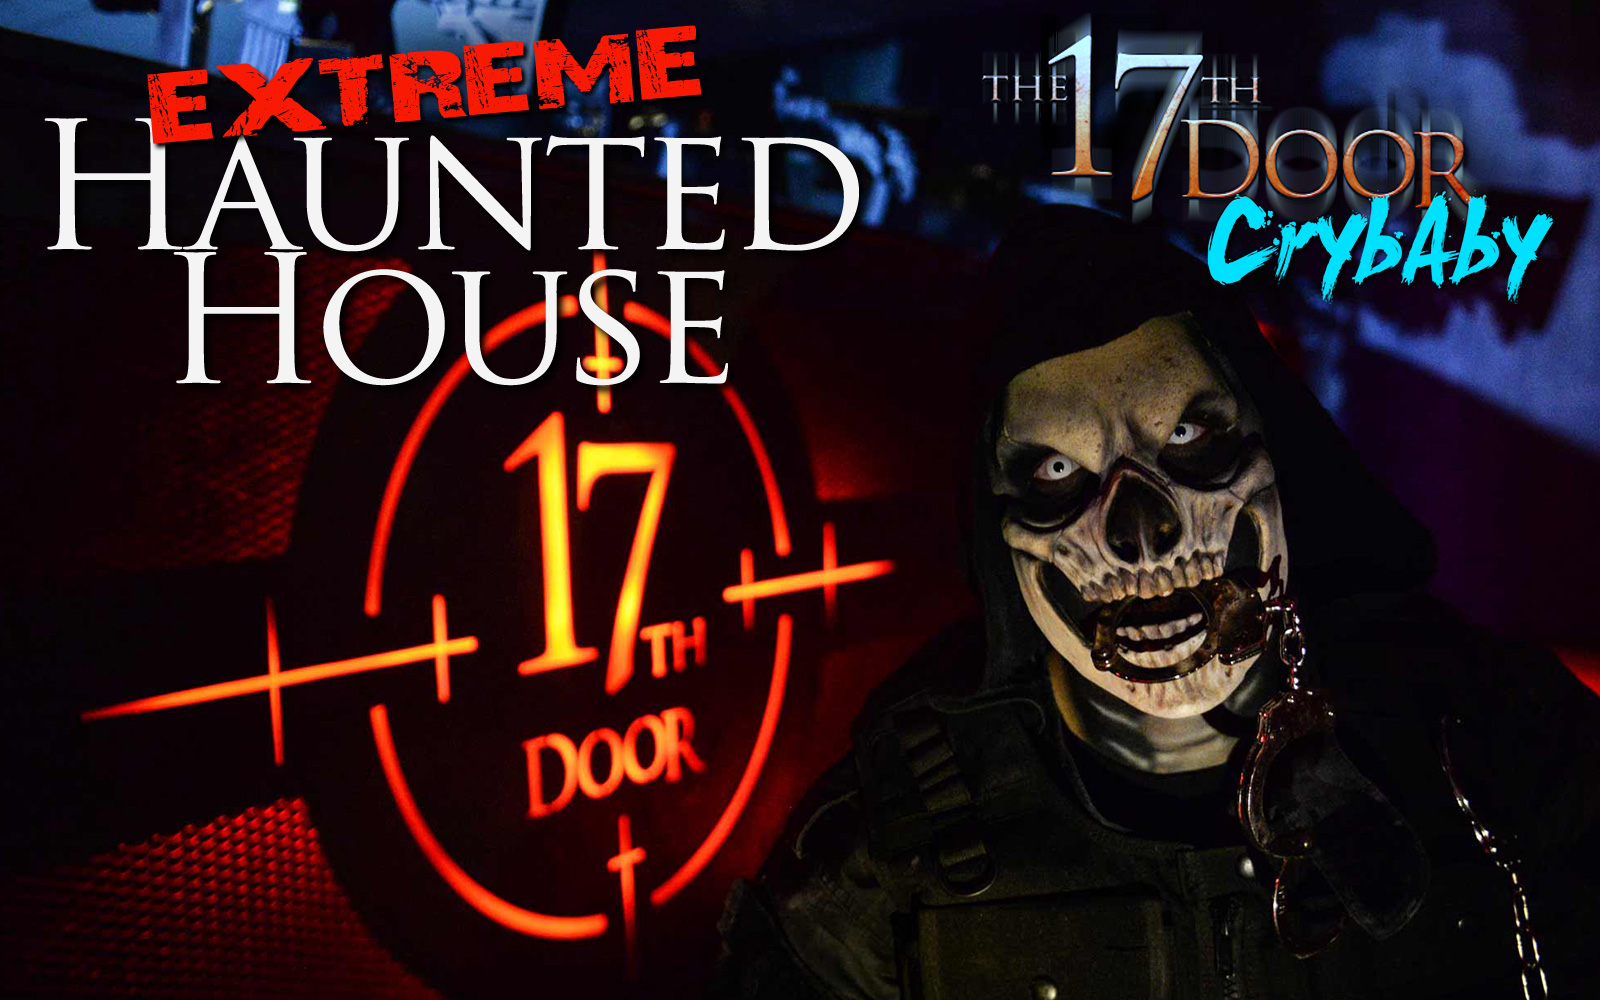 the 17th door haunted experience fullerton california